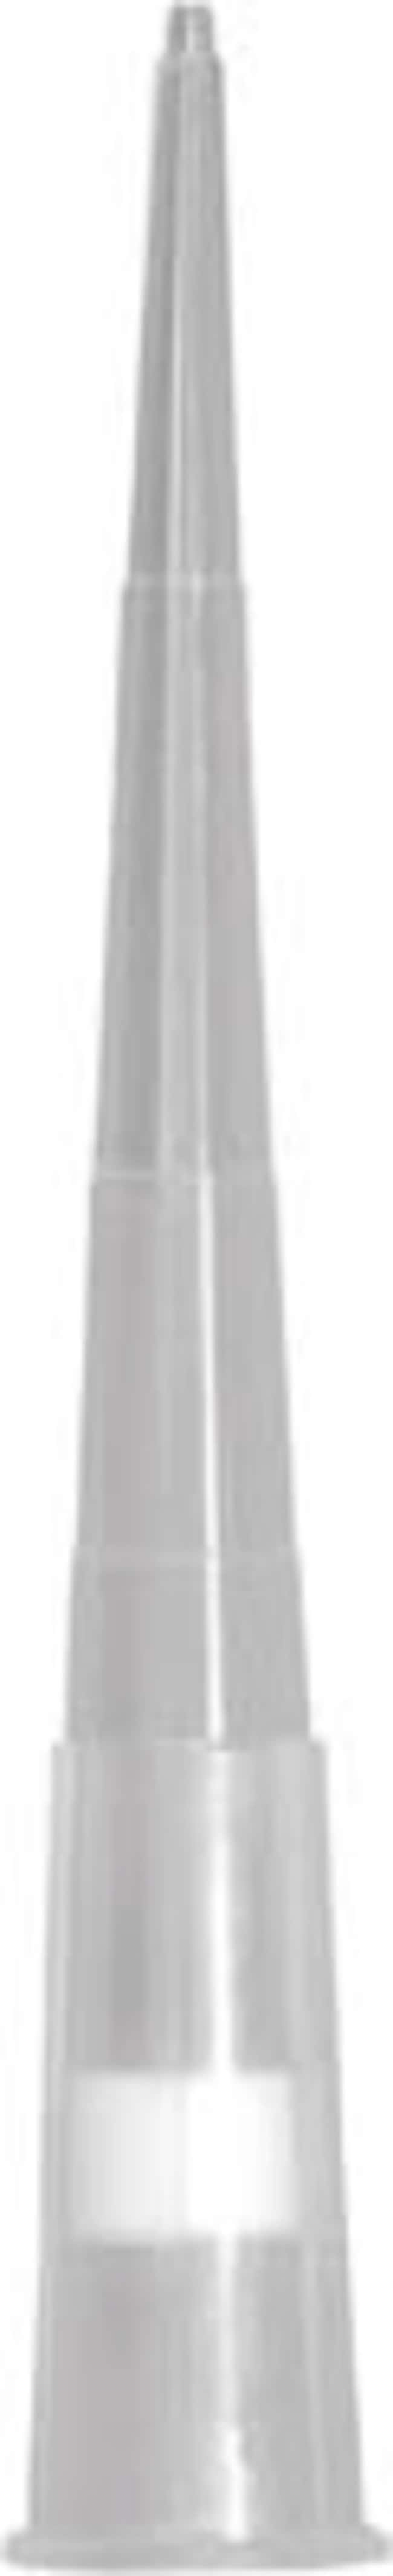 Fisherbrand™Top-Line Pipette Filter Tips: Universal Pipette Tips Pipette Tips and Racks